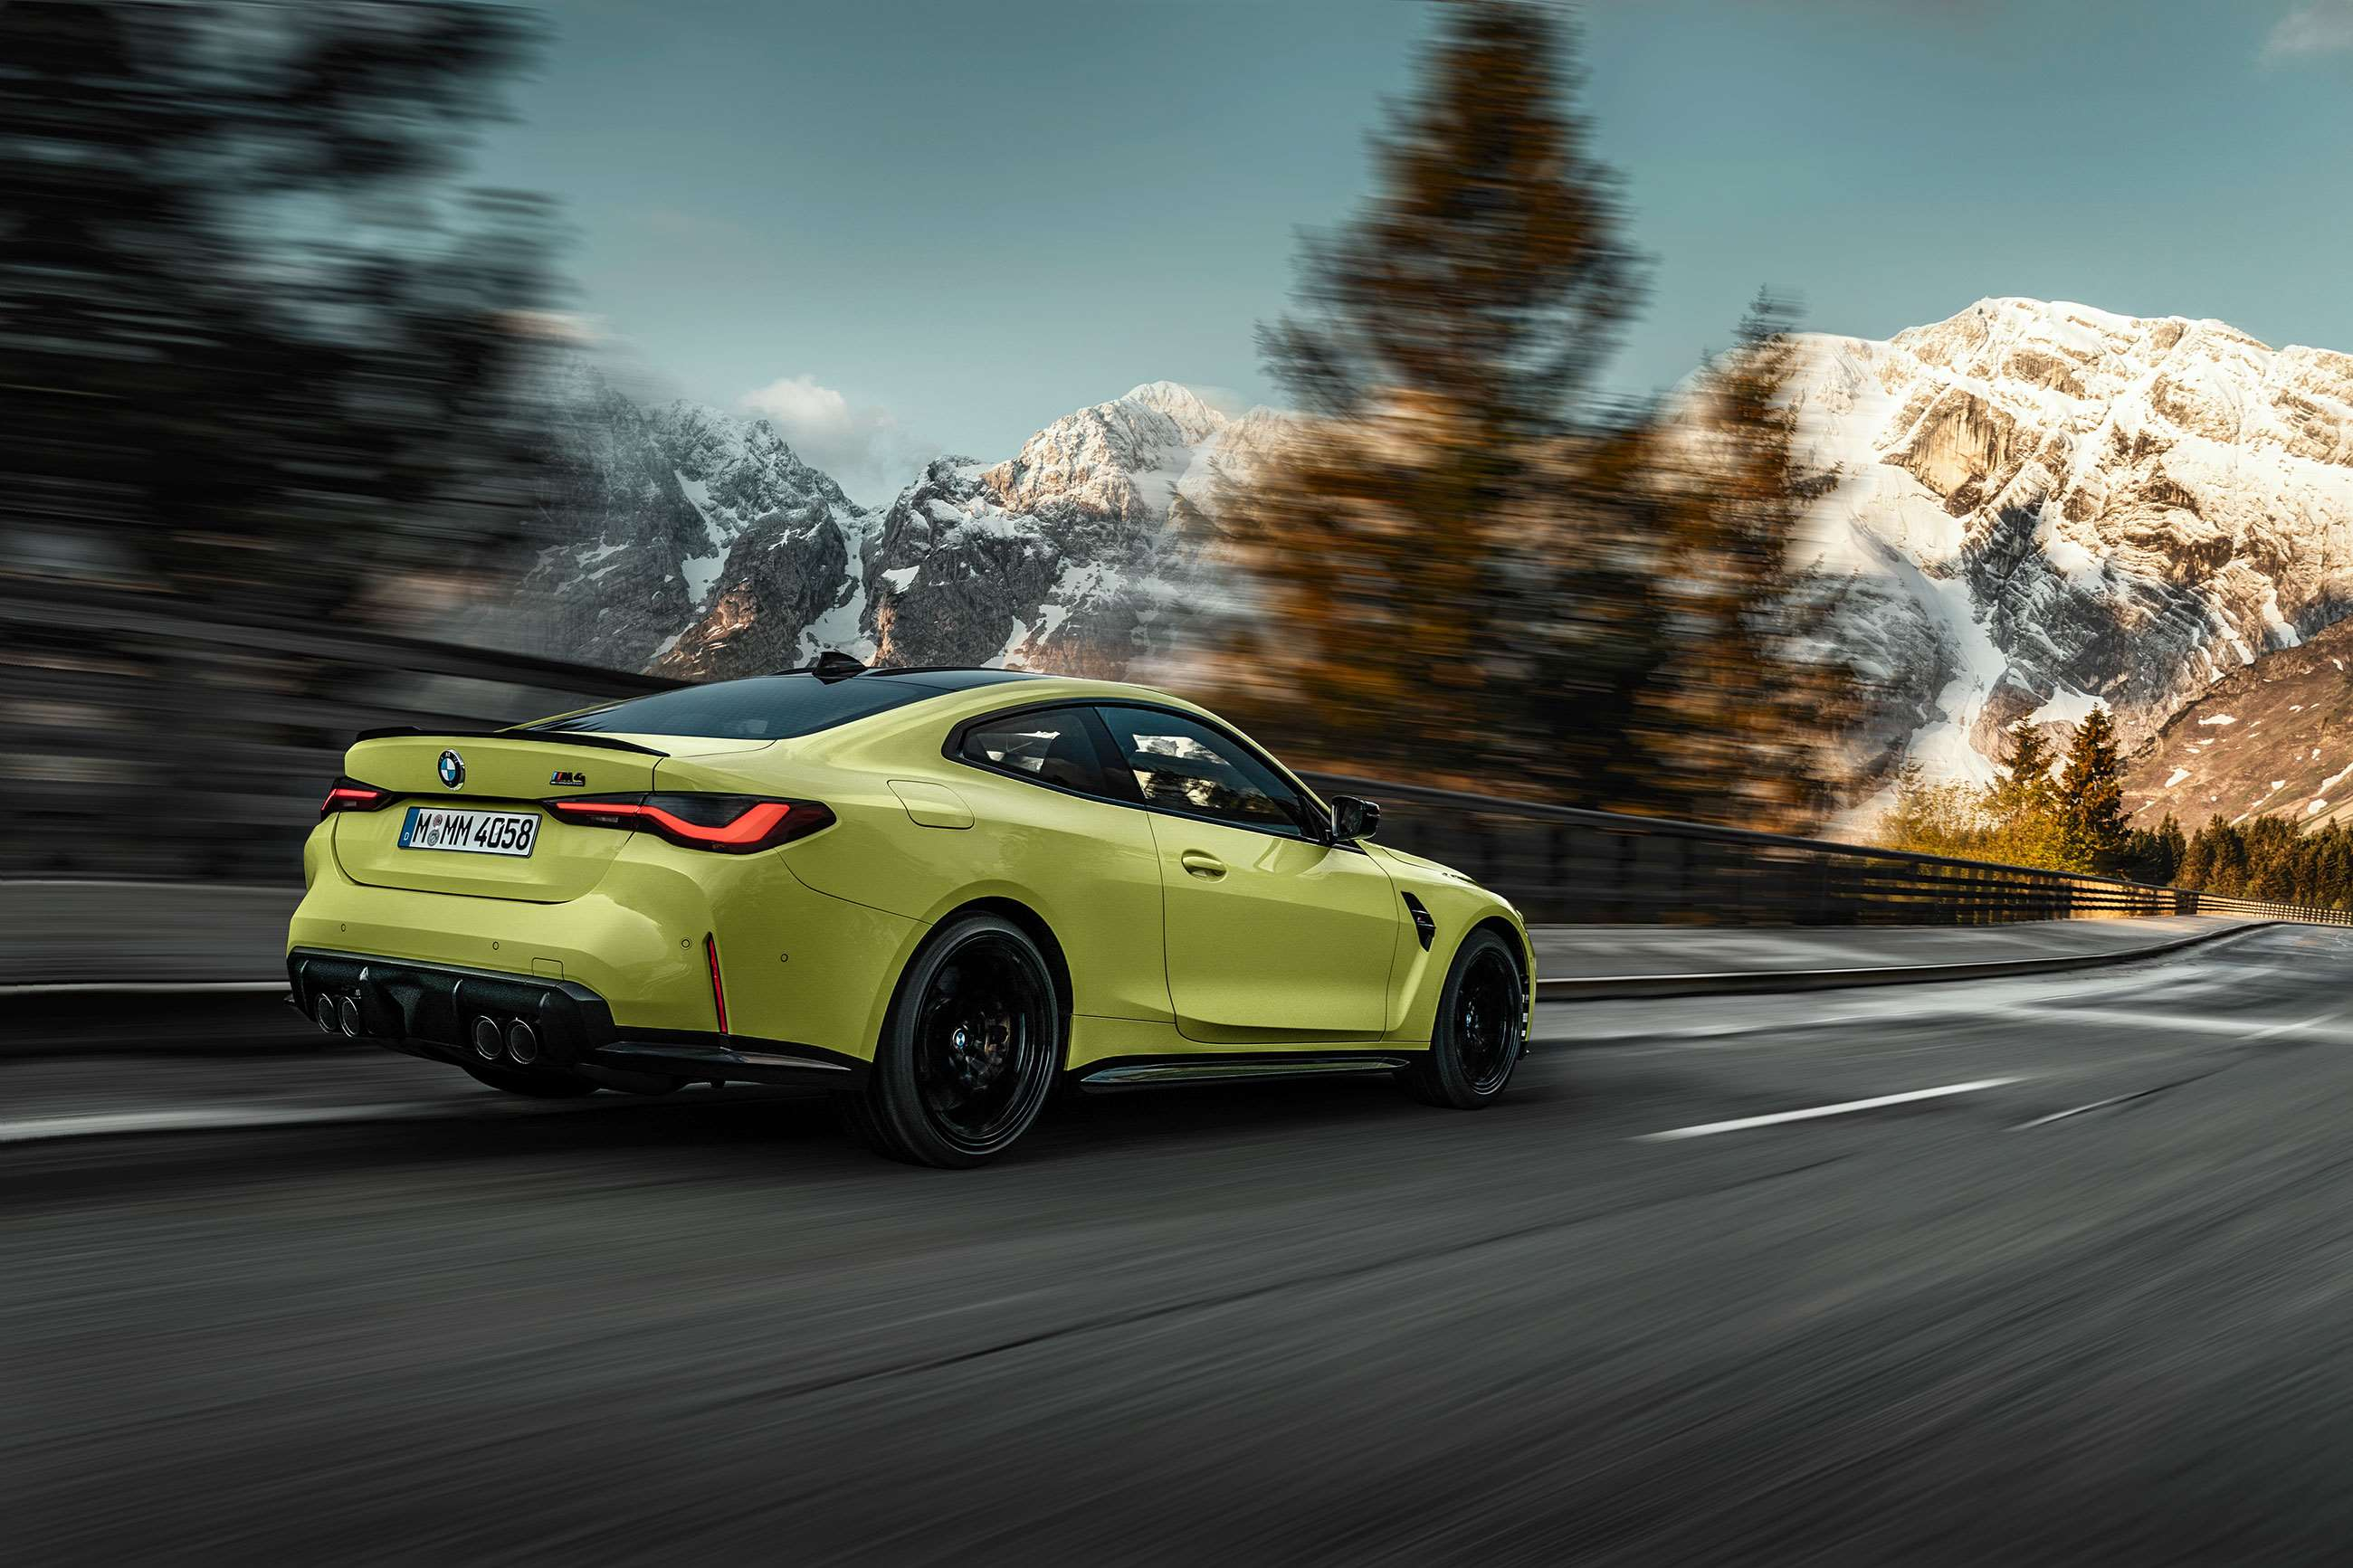 The New Bmw M3 And M4 Are Faster Than The Old M5 Grr